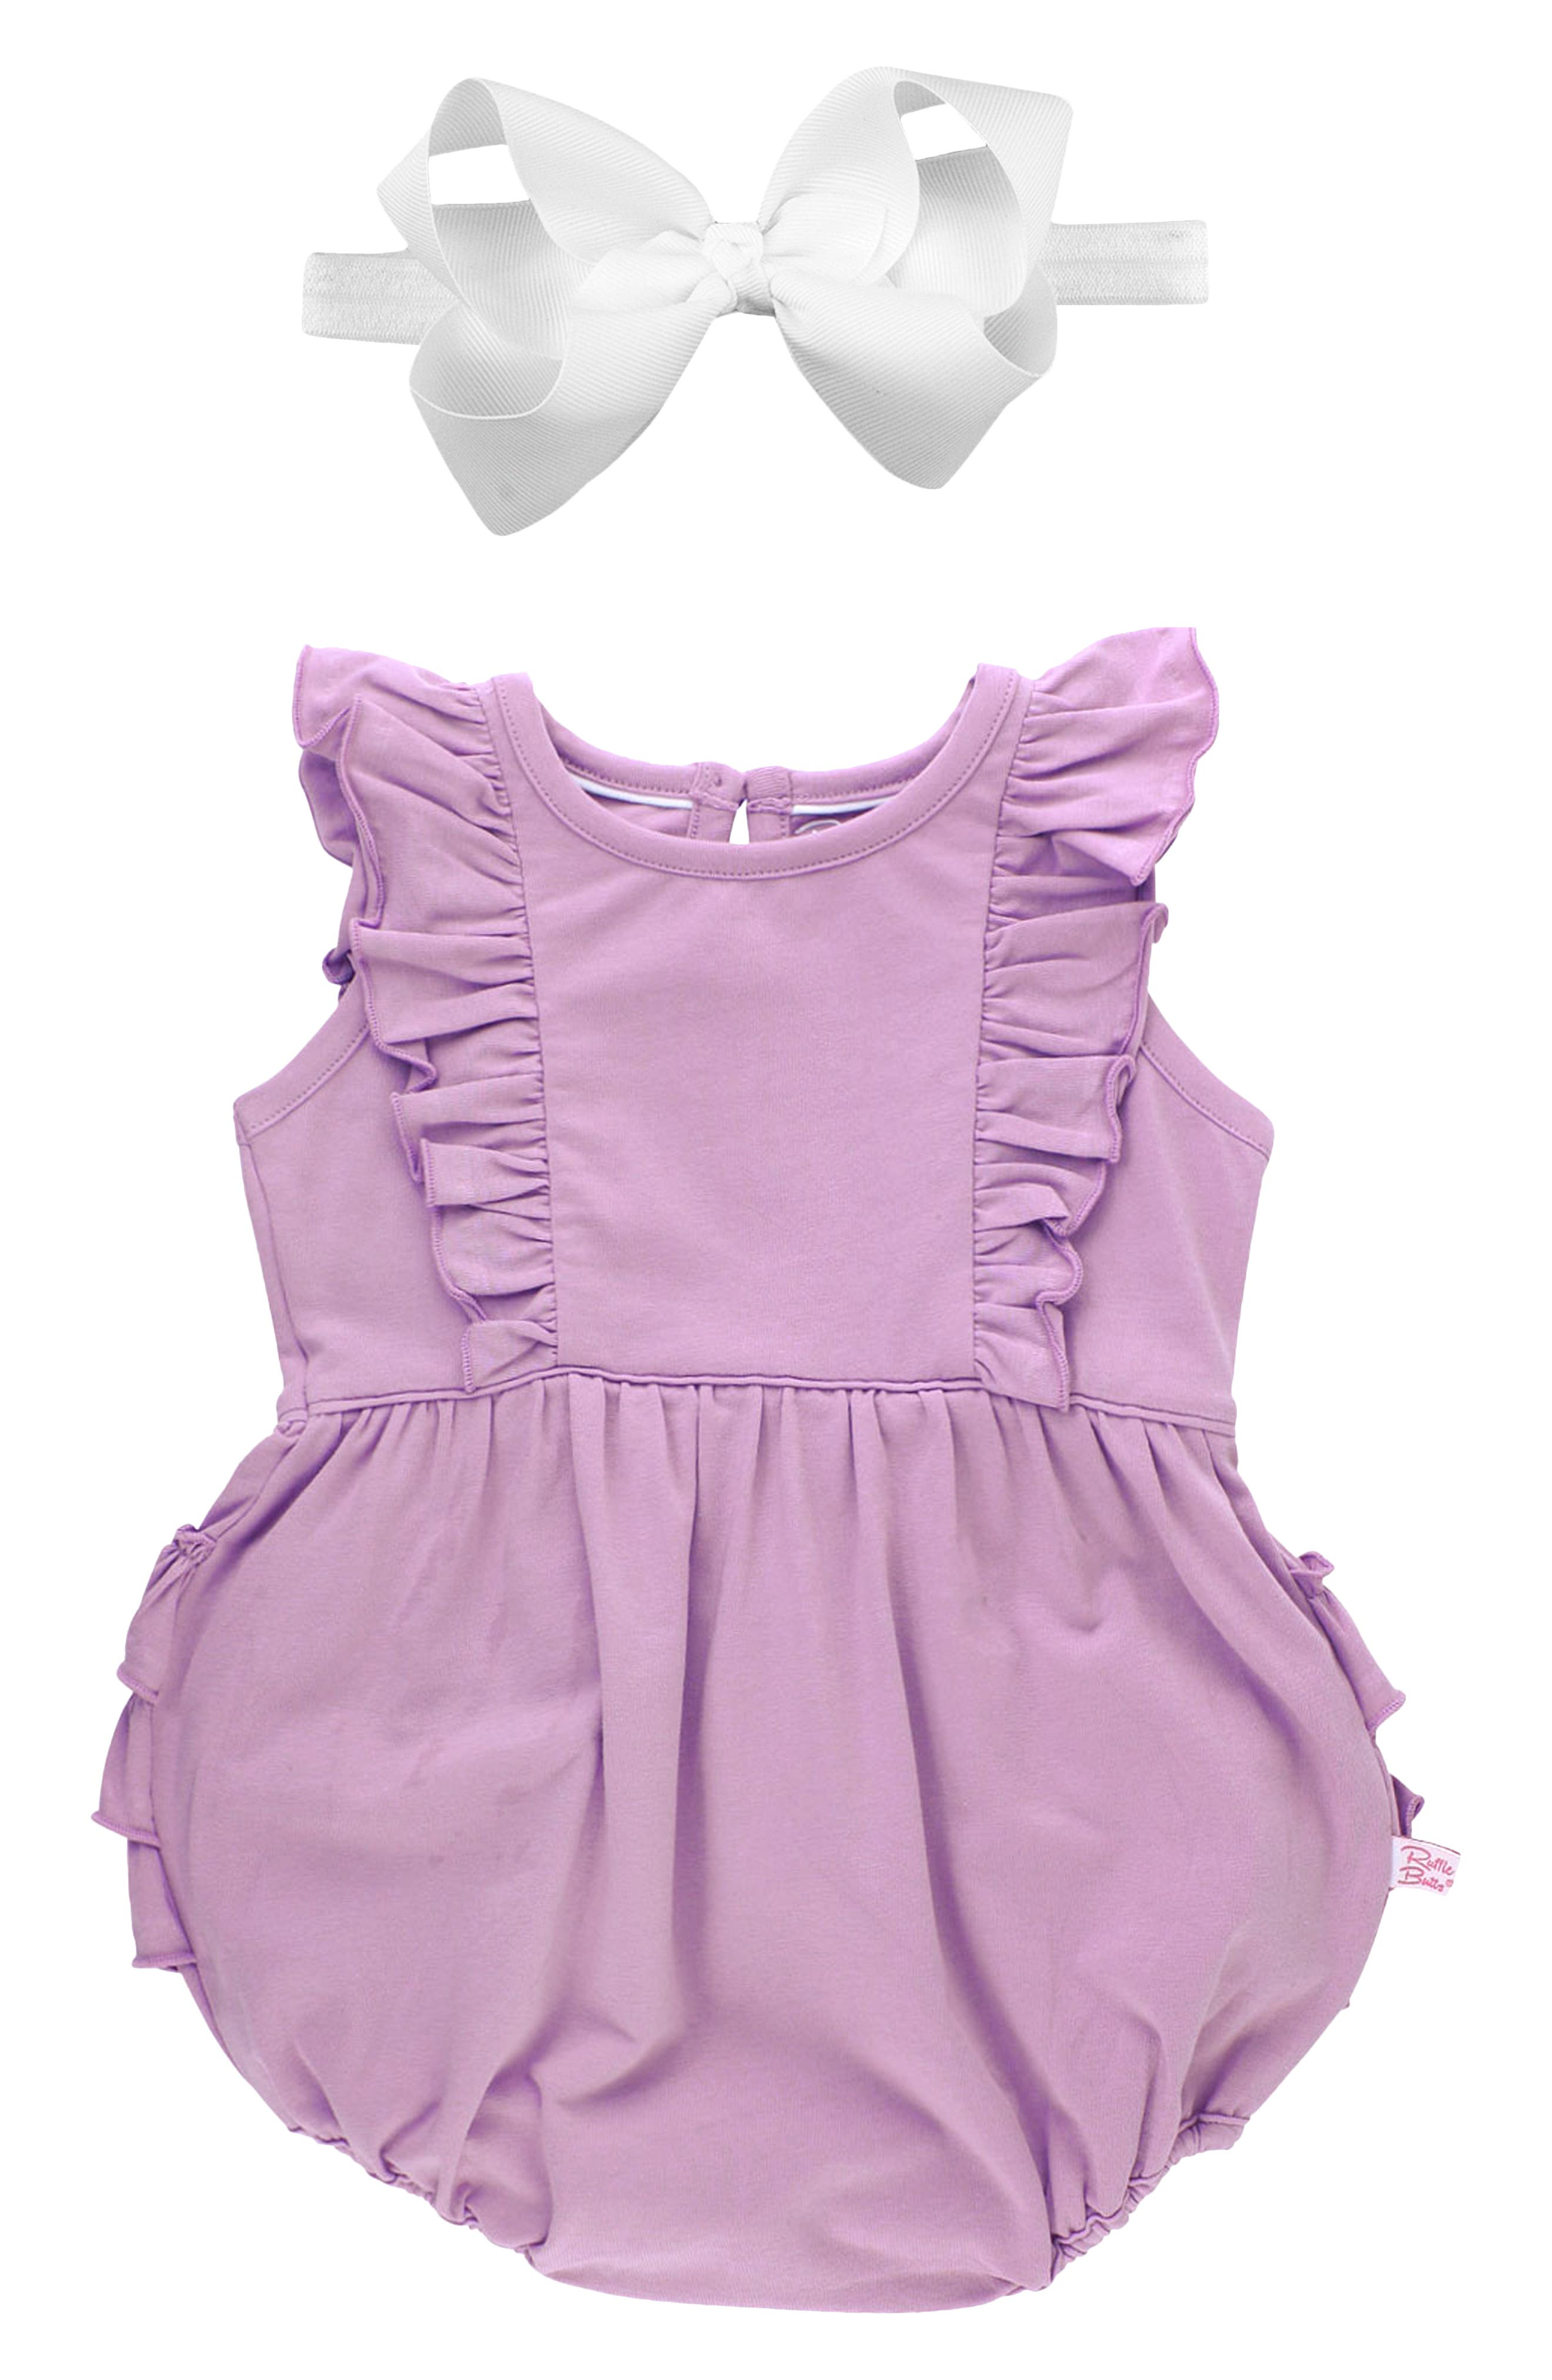 Perfect for sunny days and photo ops, this sweet romper is trimmed with fluttery ruffles and paired with a coordinating grosgrain-ribbon head wrap. Style Name: Rufflebutts Lilac Bubble Romper & Bow Set (Baby). Style Number: 6115693. Available in stores.